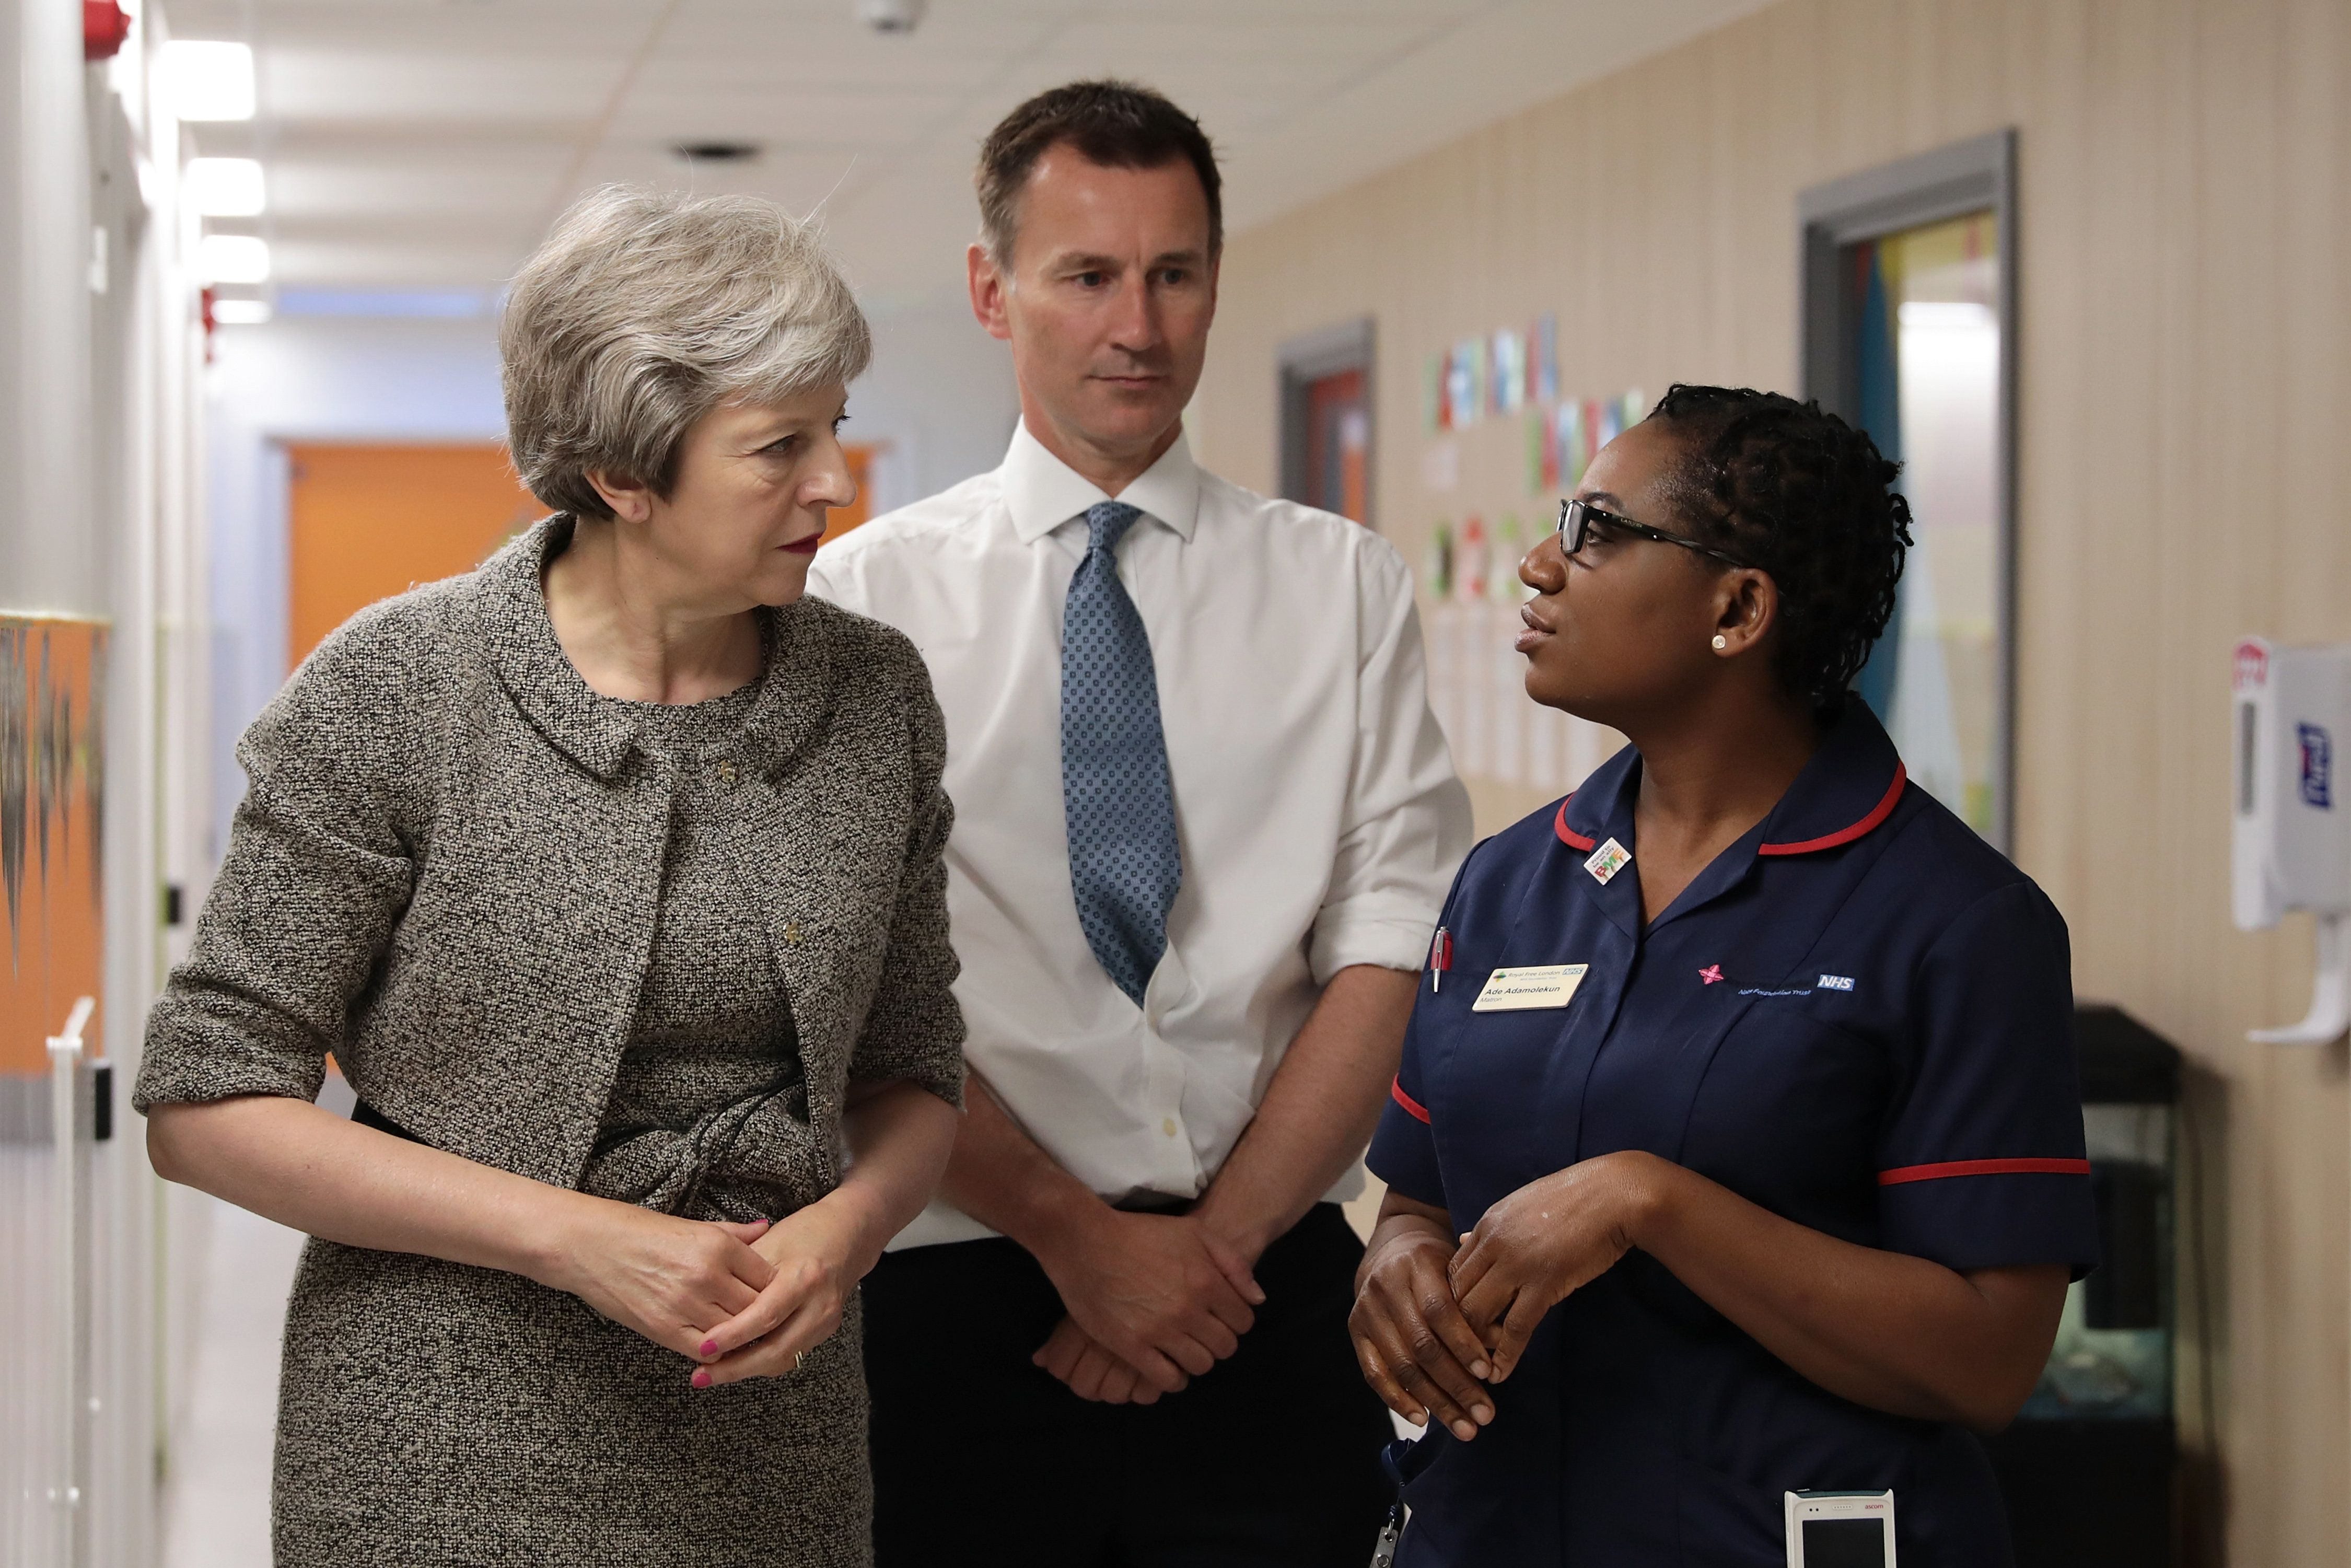 Experts Demand Parliamentary Probe Into Theresa May's NHS Spending